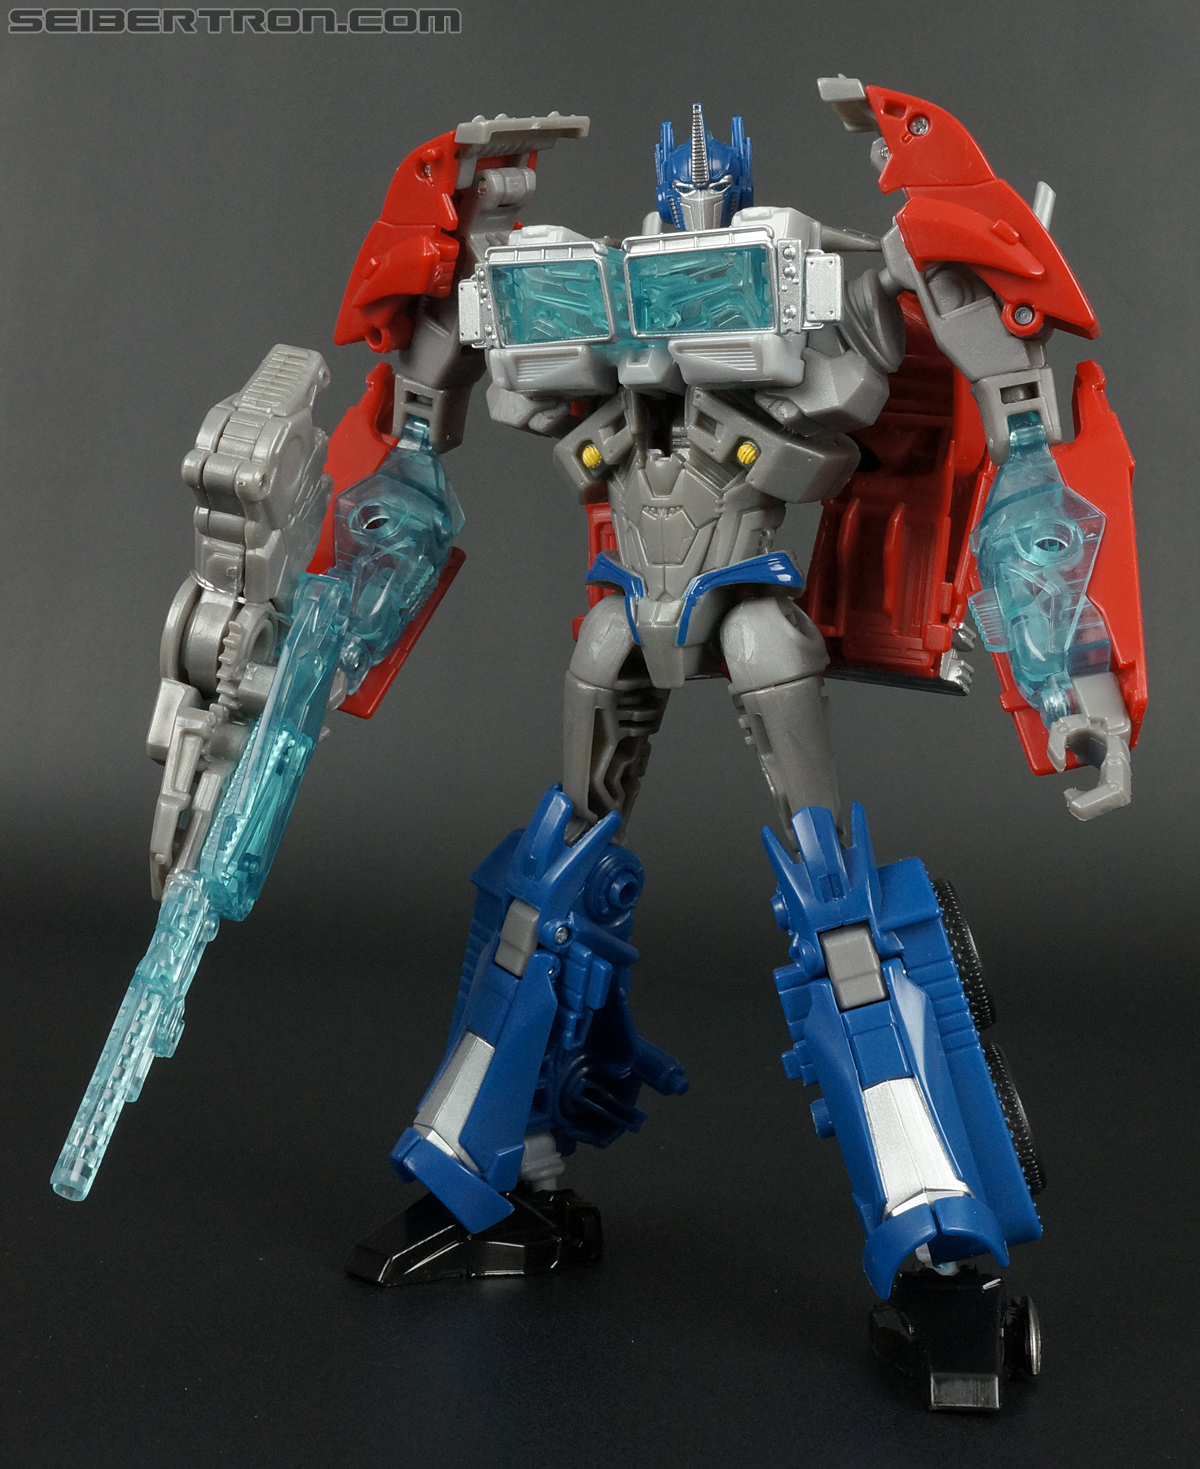 Transformers Prime: Robots In Disguise Optimus Prime (Image #138 of 176)